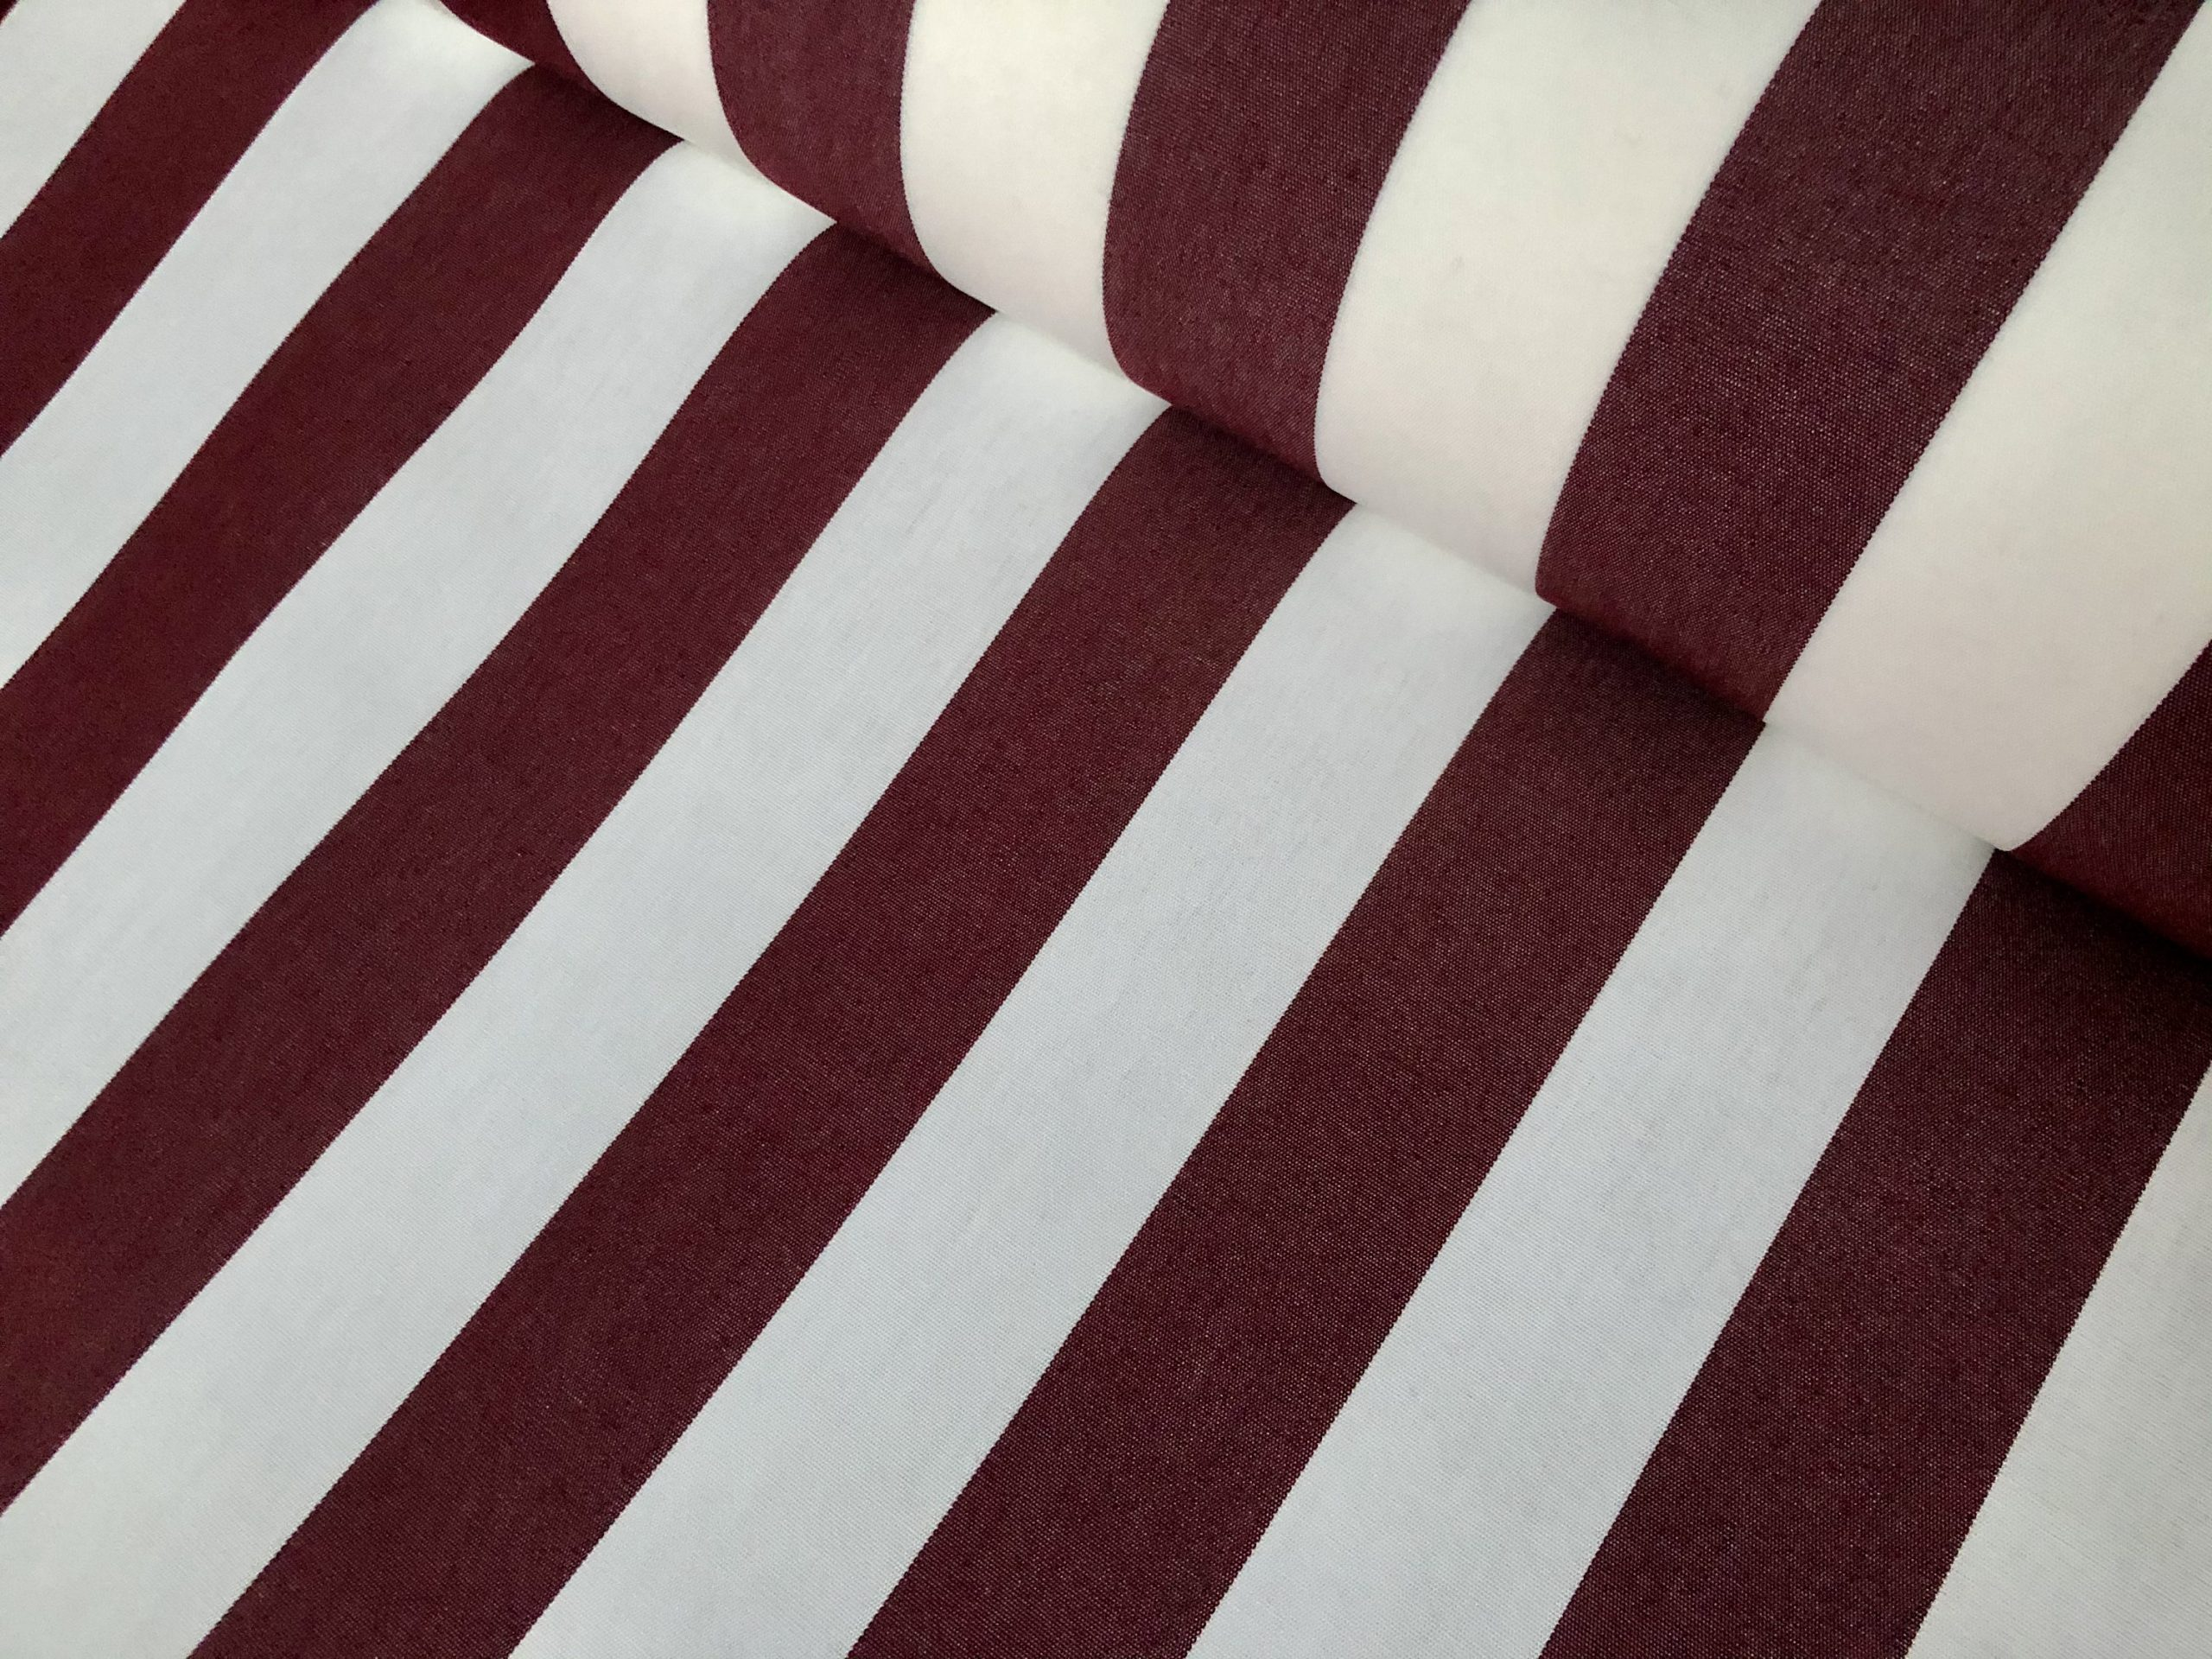 "Burgundy & White Striped DRALON Outdoor Fabric Acrylic Teflon Waterproof Upholstery Material For Cushion Gazebo Beach – 63""/160cm Wide"